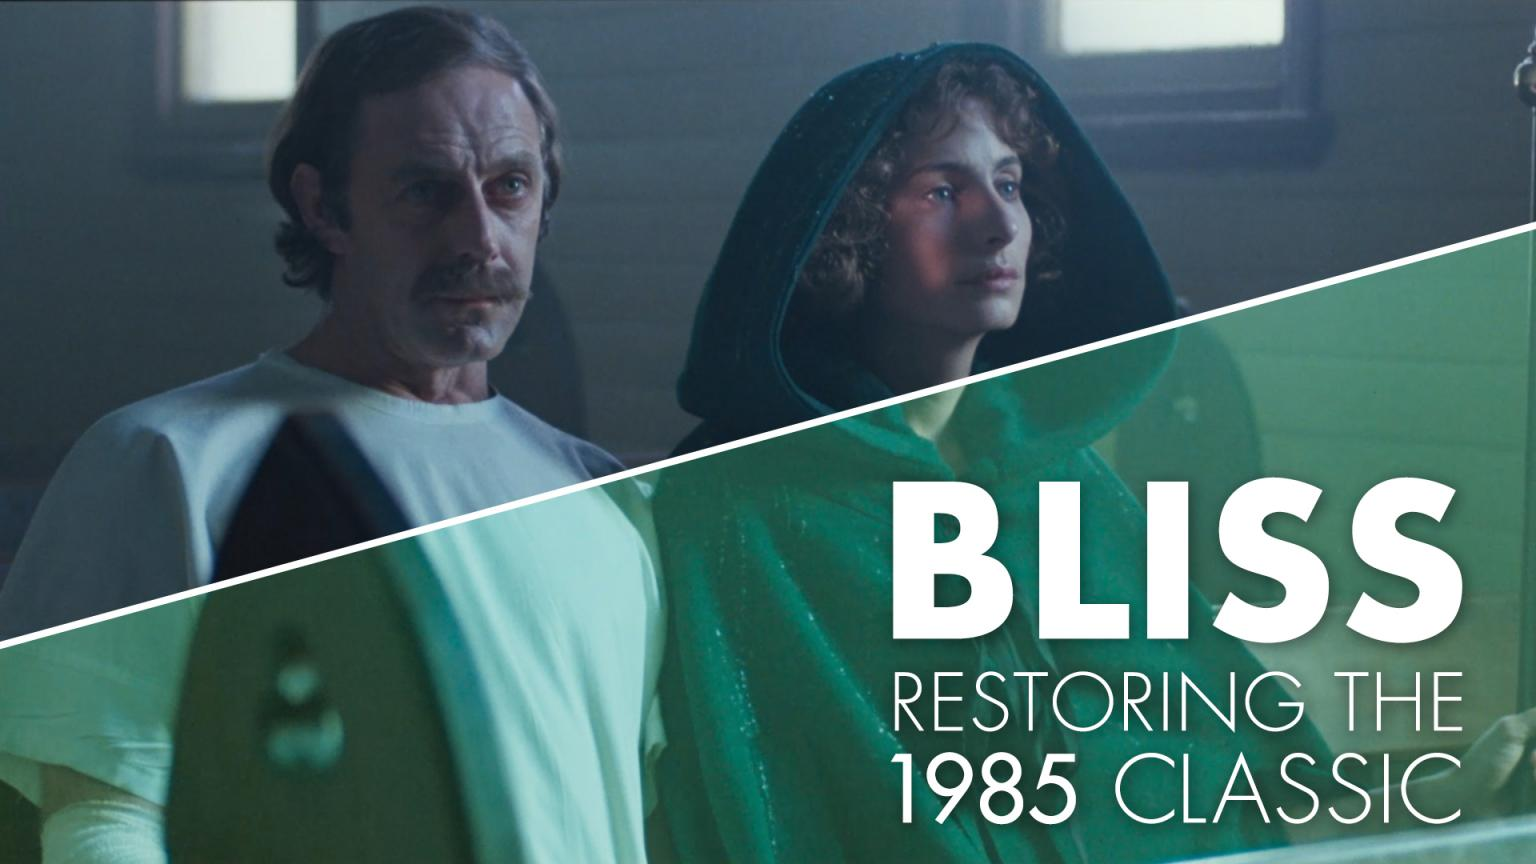 A split screen showing the film Bliss before and after restoration